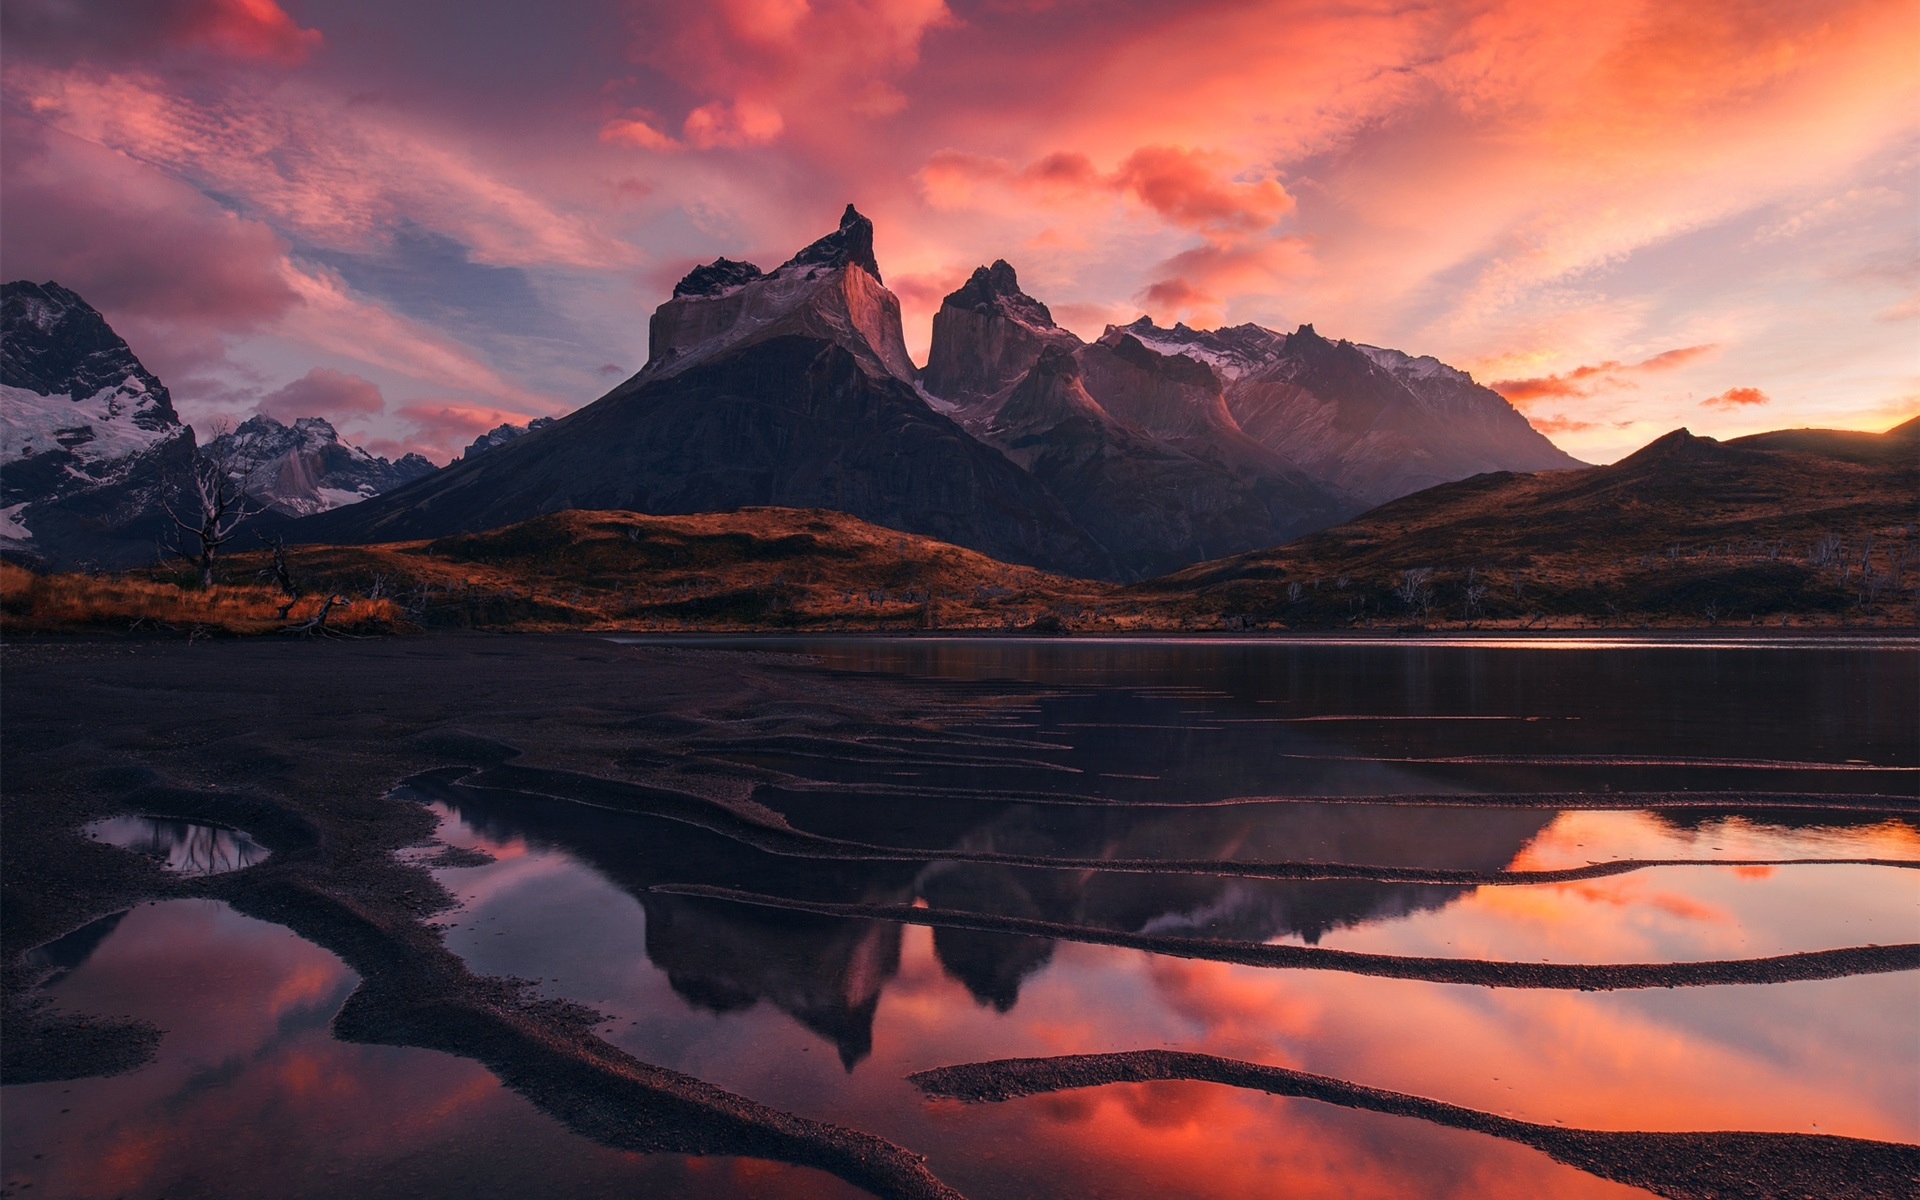 patagonia beautiful landscape mountains lake red sky clouds sunset 1080P wallpaper